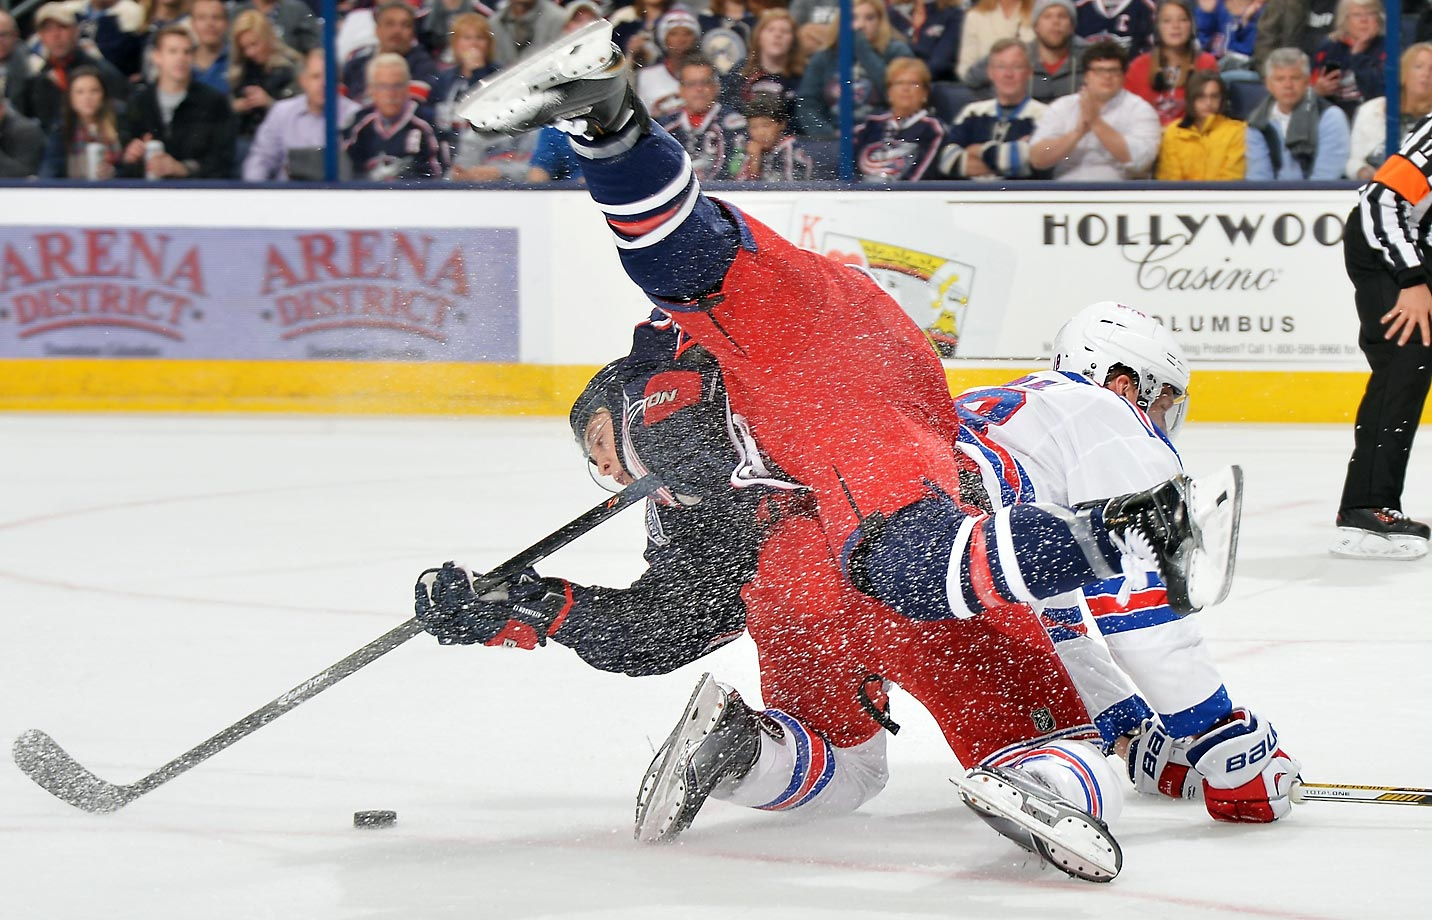 Cam Atkinson of the Columbus Blue Jackets is knocked off his feet by Marc Staal of the New York Rangers. Columbus defeated New York 5-2.